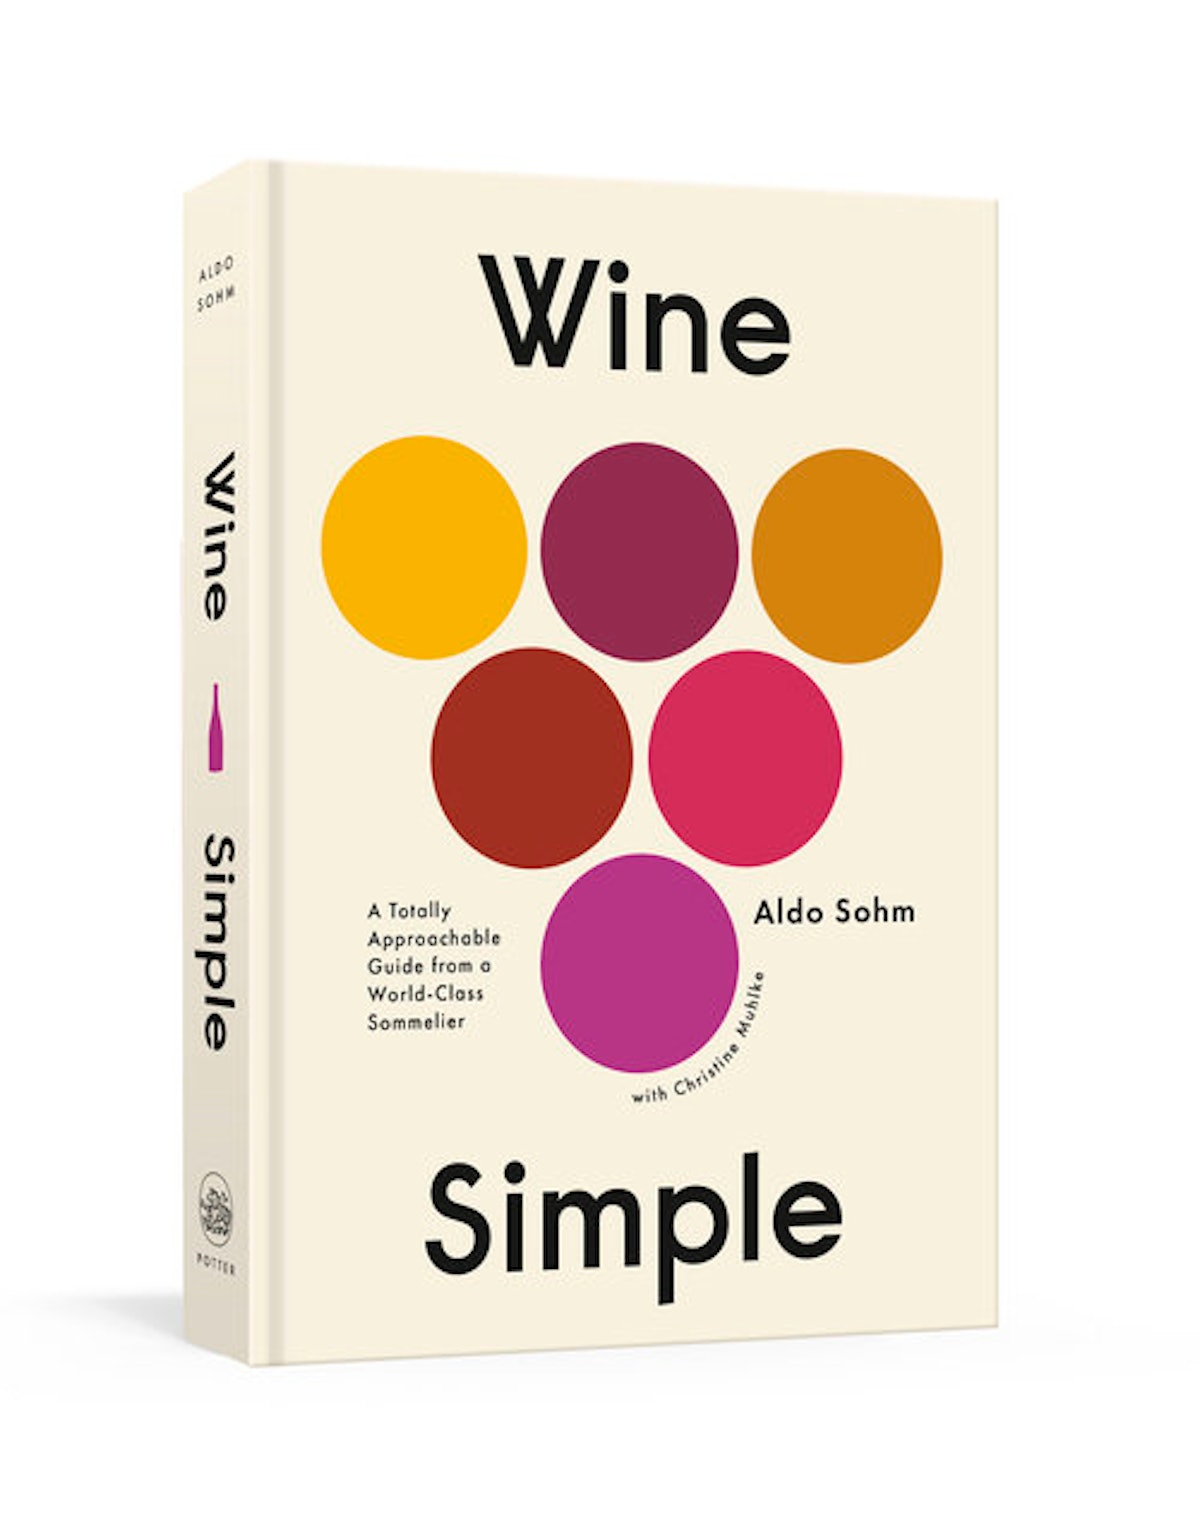 """""""Wine Simple: A Totally Approachable Guide from a World-Class Sommelier"""" by Aldo Sohm"""